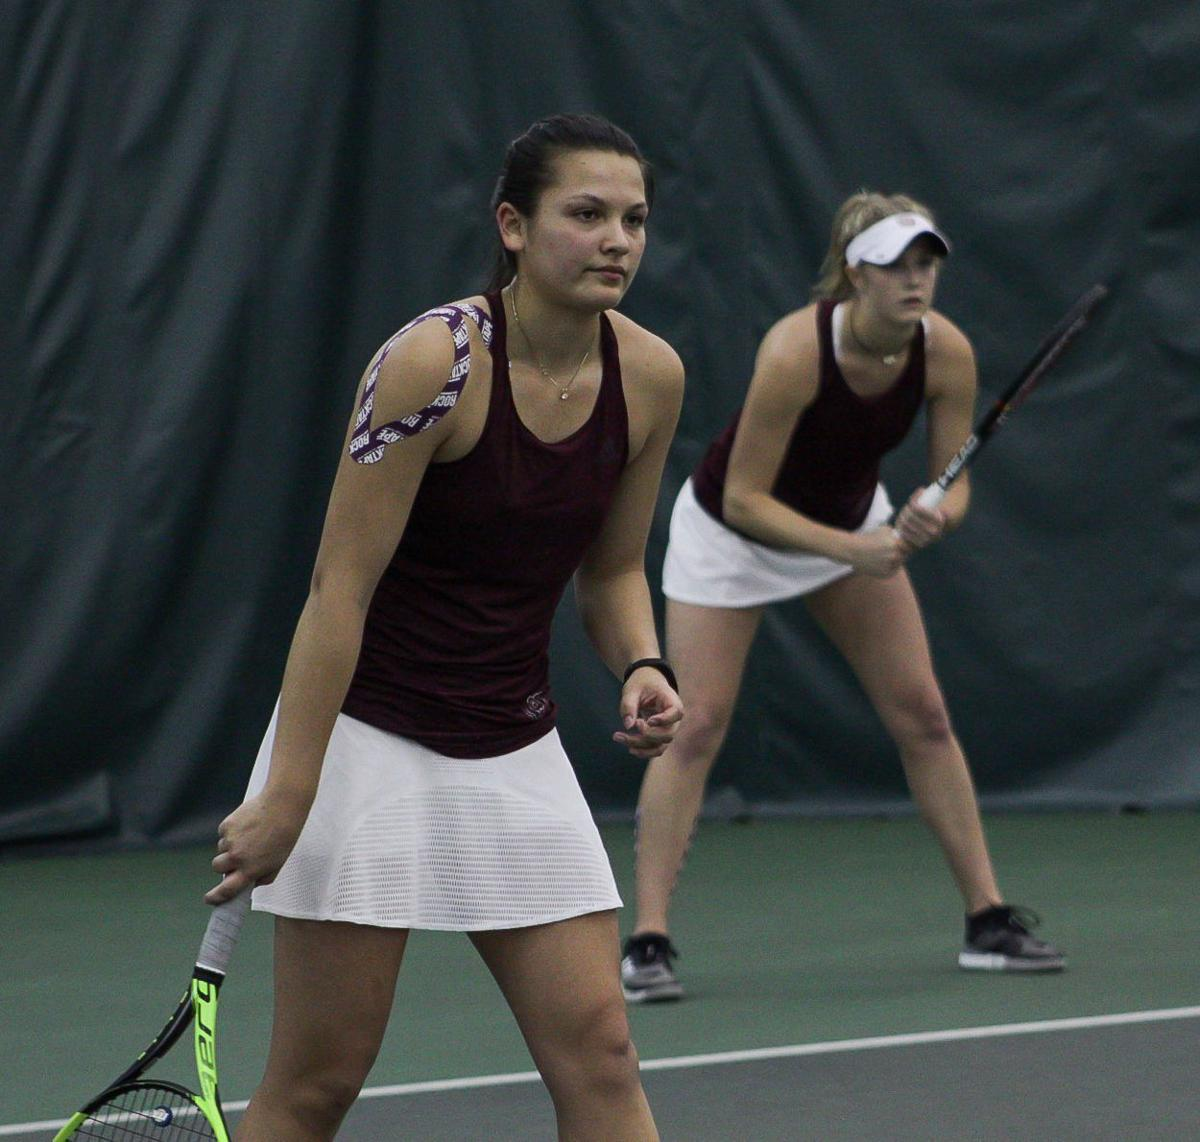 Anna Alons, Ellie Burger doubles